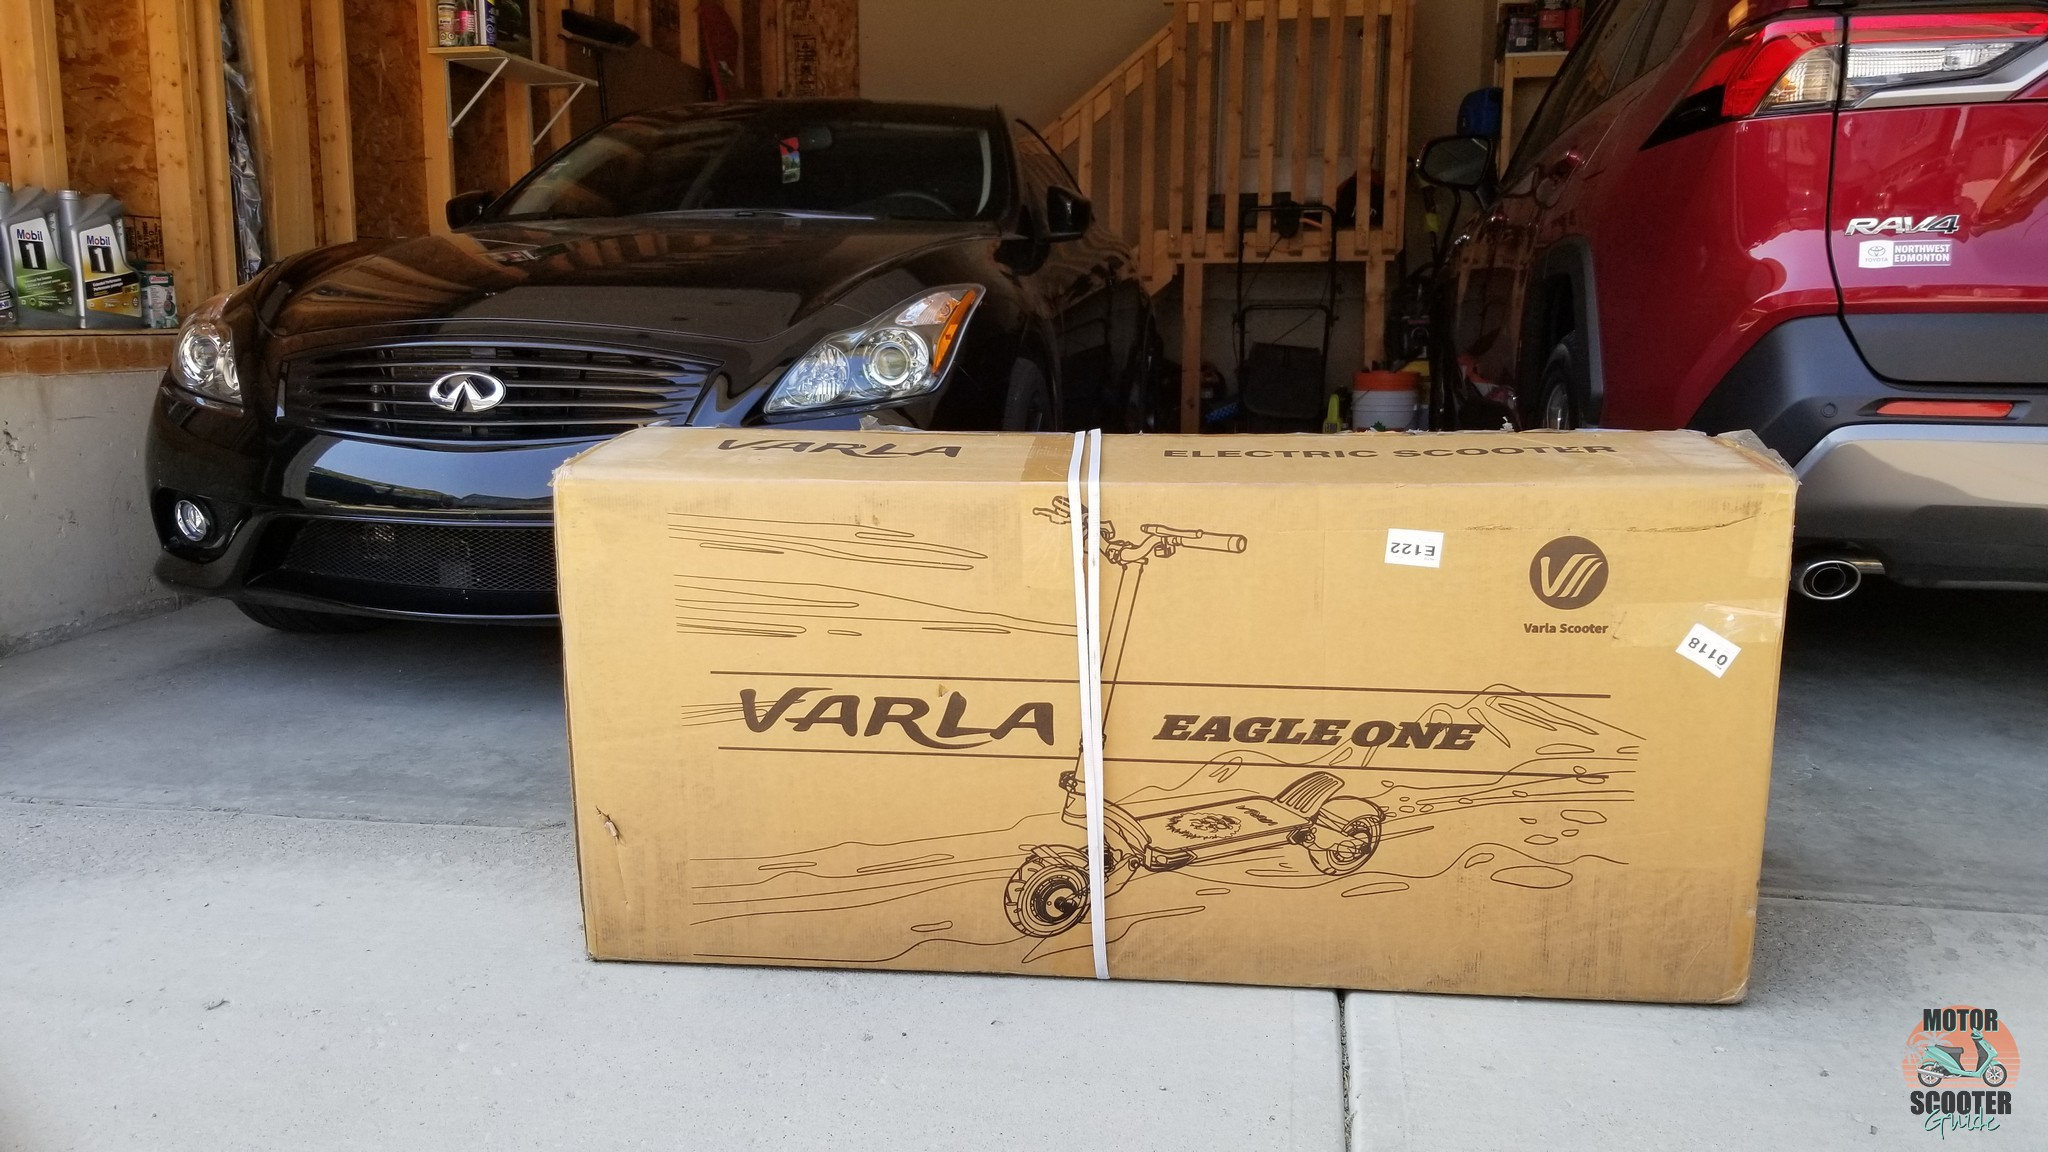 Varla Eagle One scooter in the box